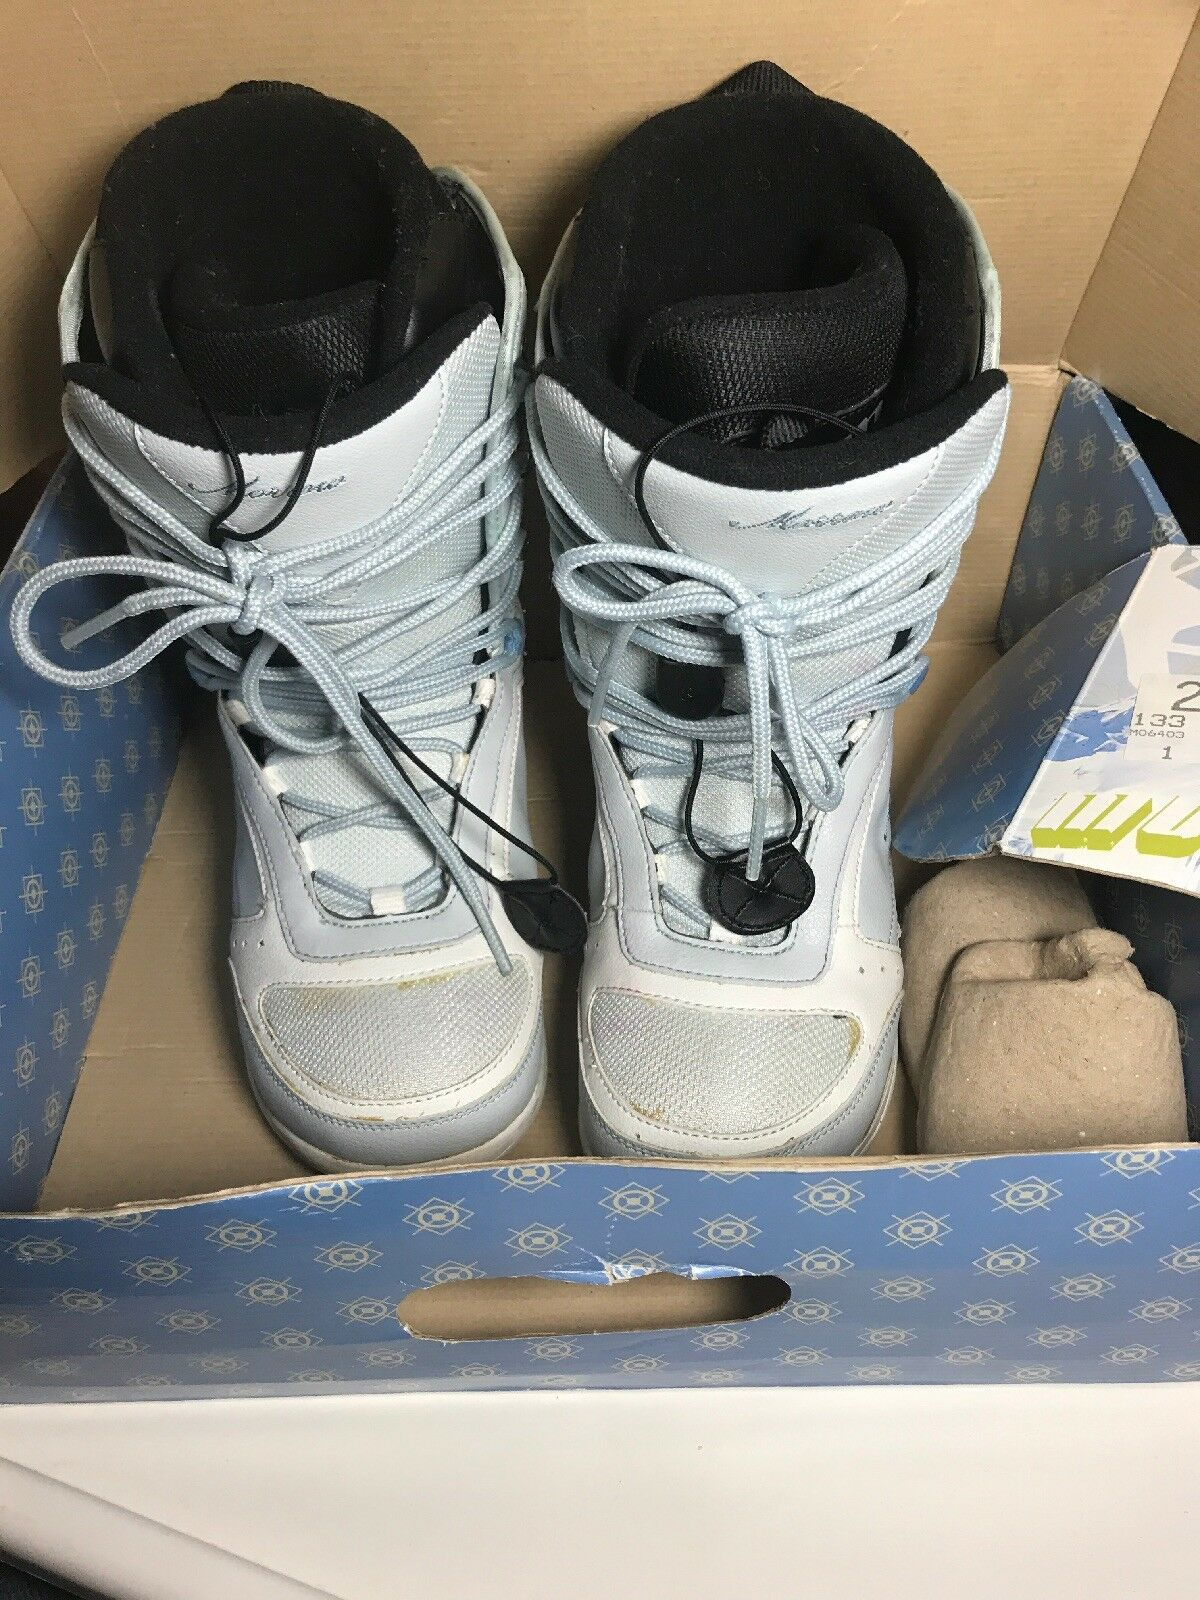 LADIES   MORROW   bluee Ice Snow BOARD BOOTS - EXCELLENT CONDITION Size 7